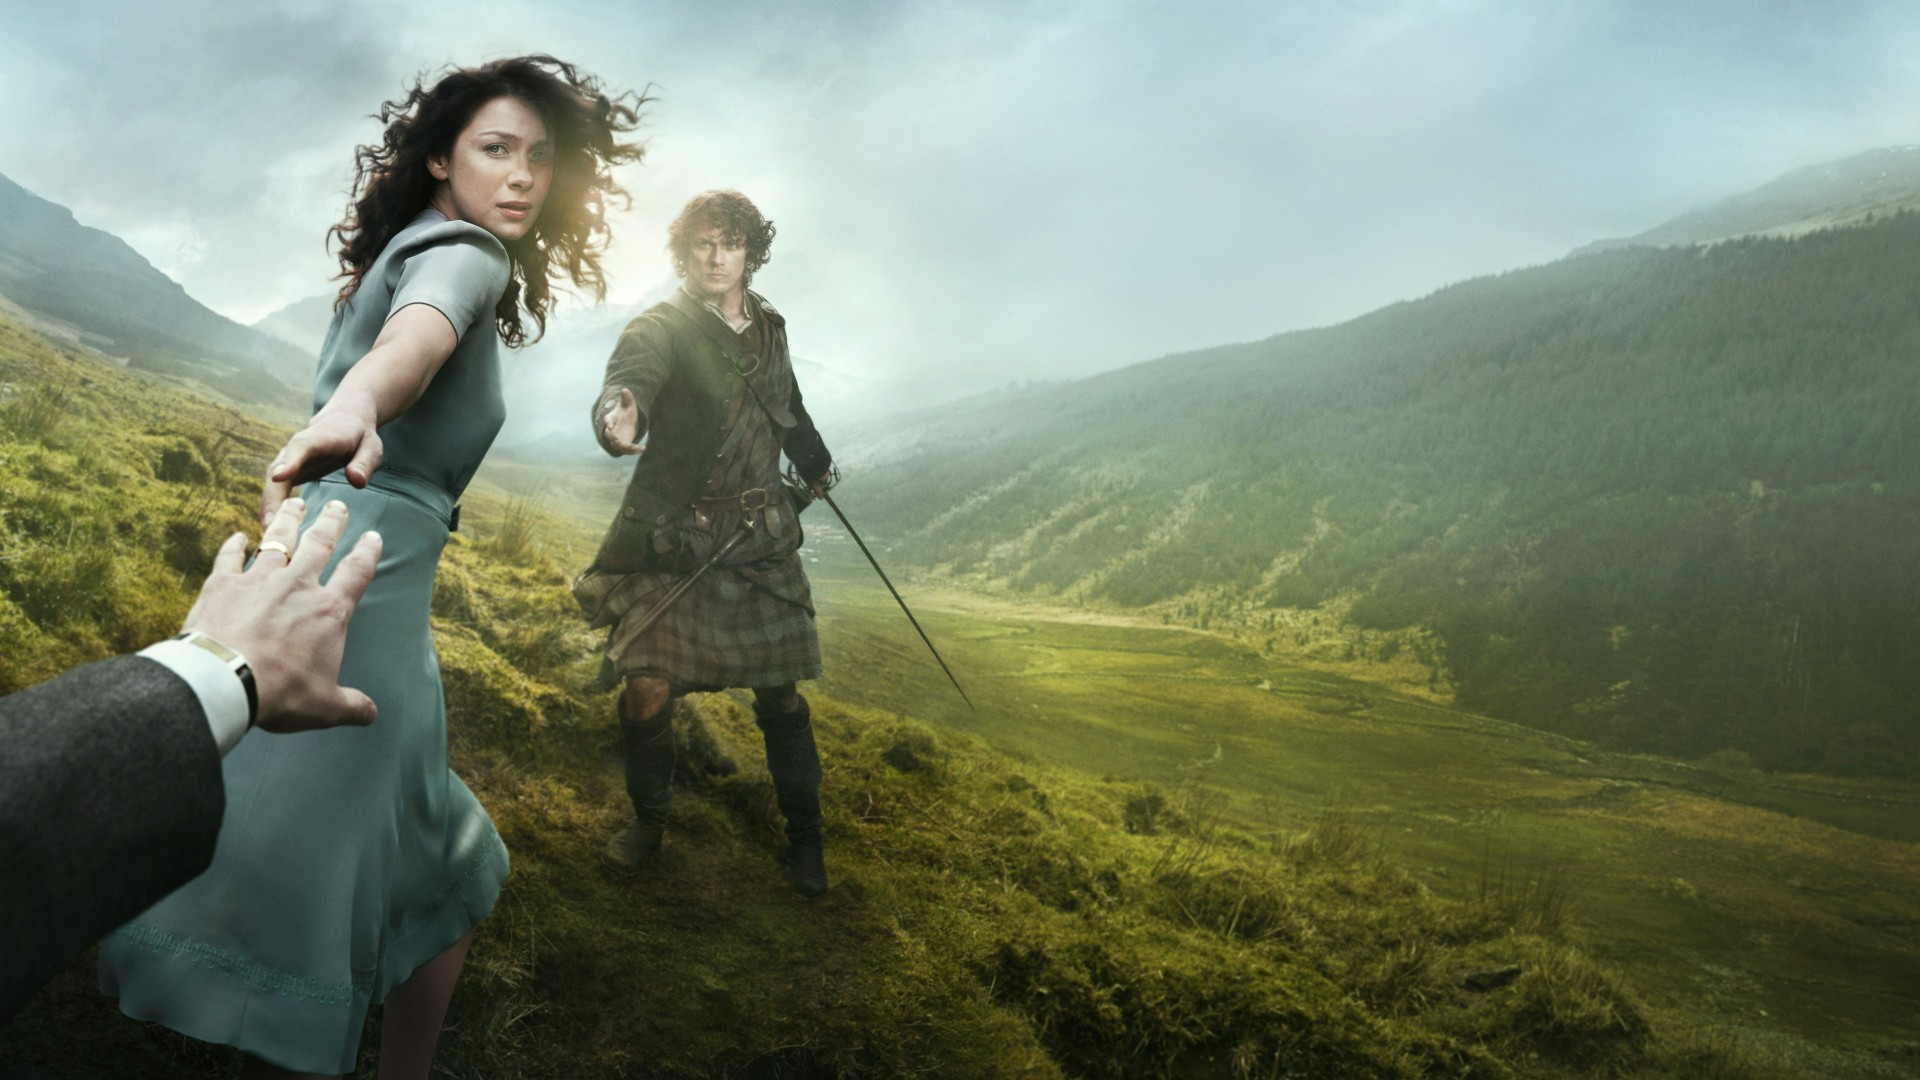 Cute Wallpaper Hd Download Outlander 2014 Tv Series Wallpapers Hd Wallpapers Id